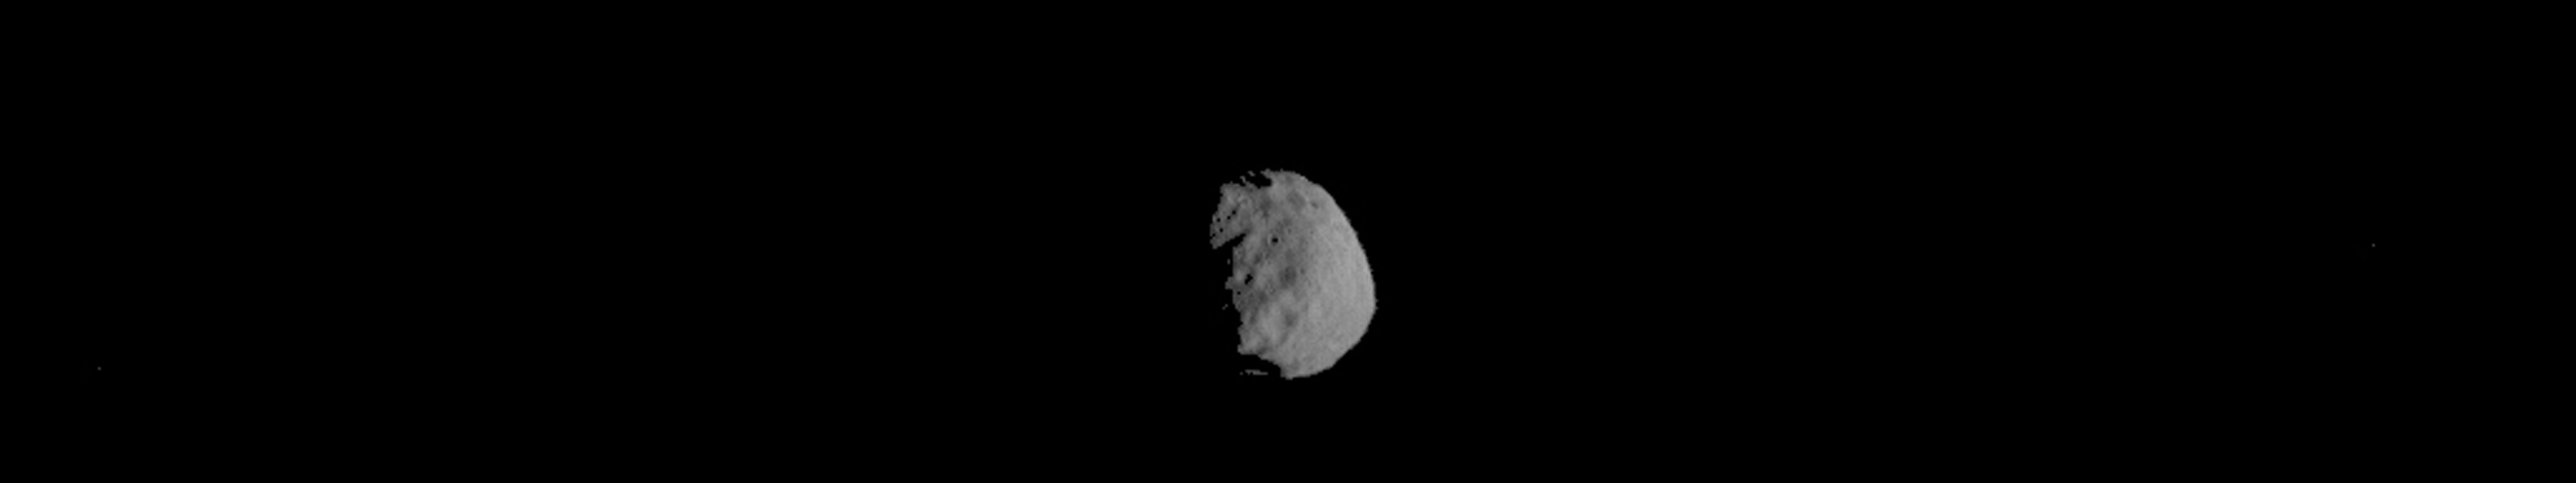 This image of Phobos is one product of the first pointing at the Martian moon by the THEMIS camera on NASA's Mars Odyssey orbiter. The Sept. 29, 2017, observation also provided information about temperatures on different areas of Phobos.